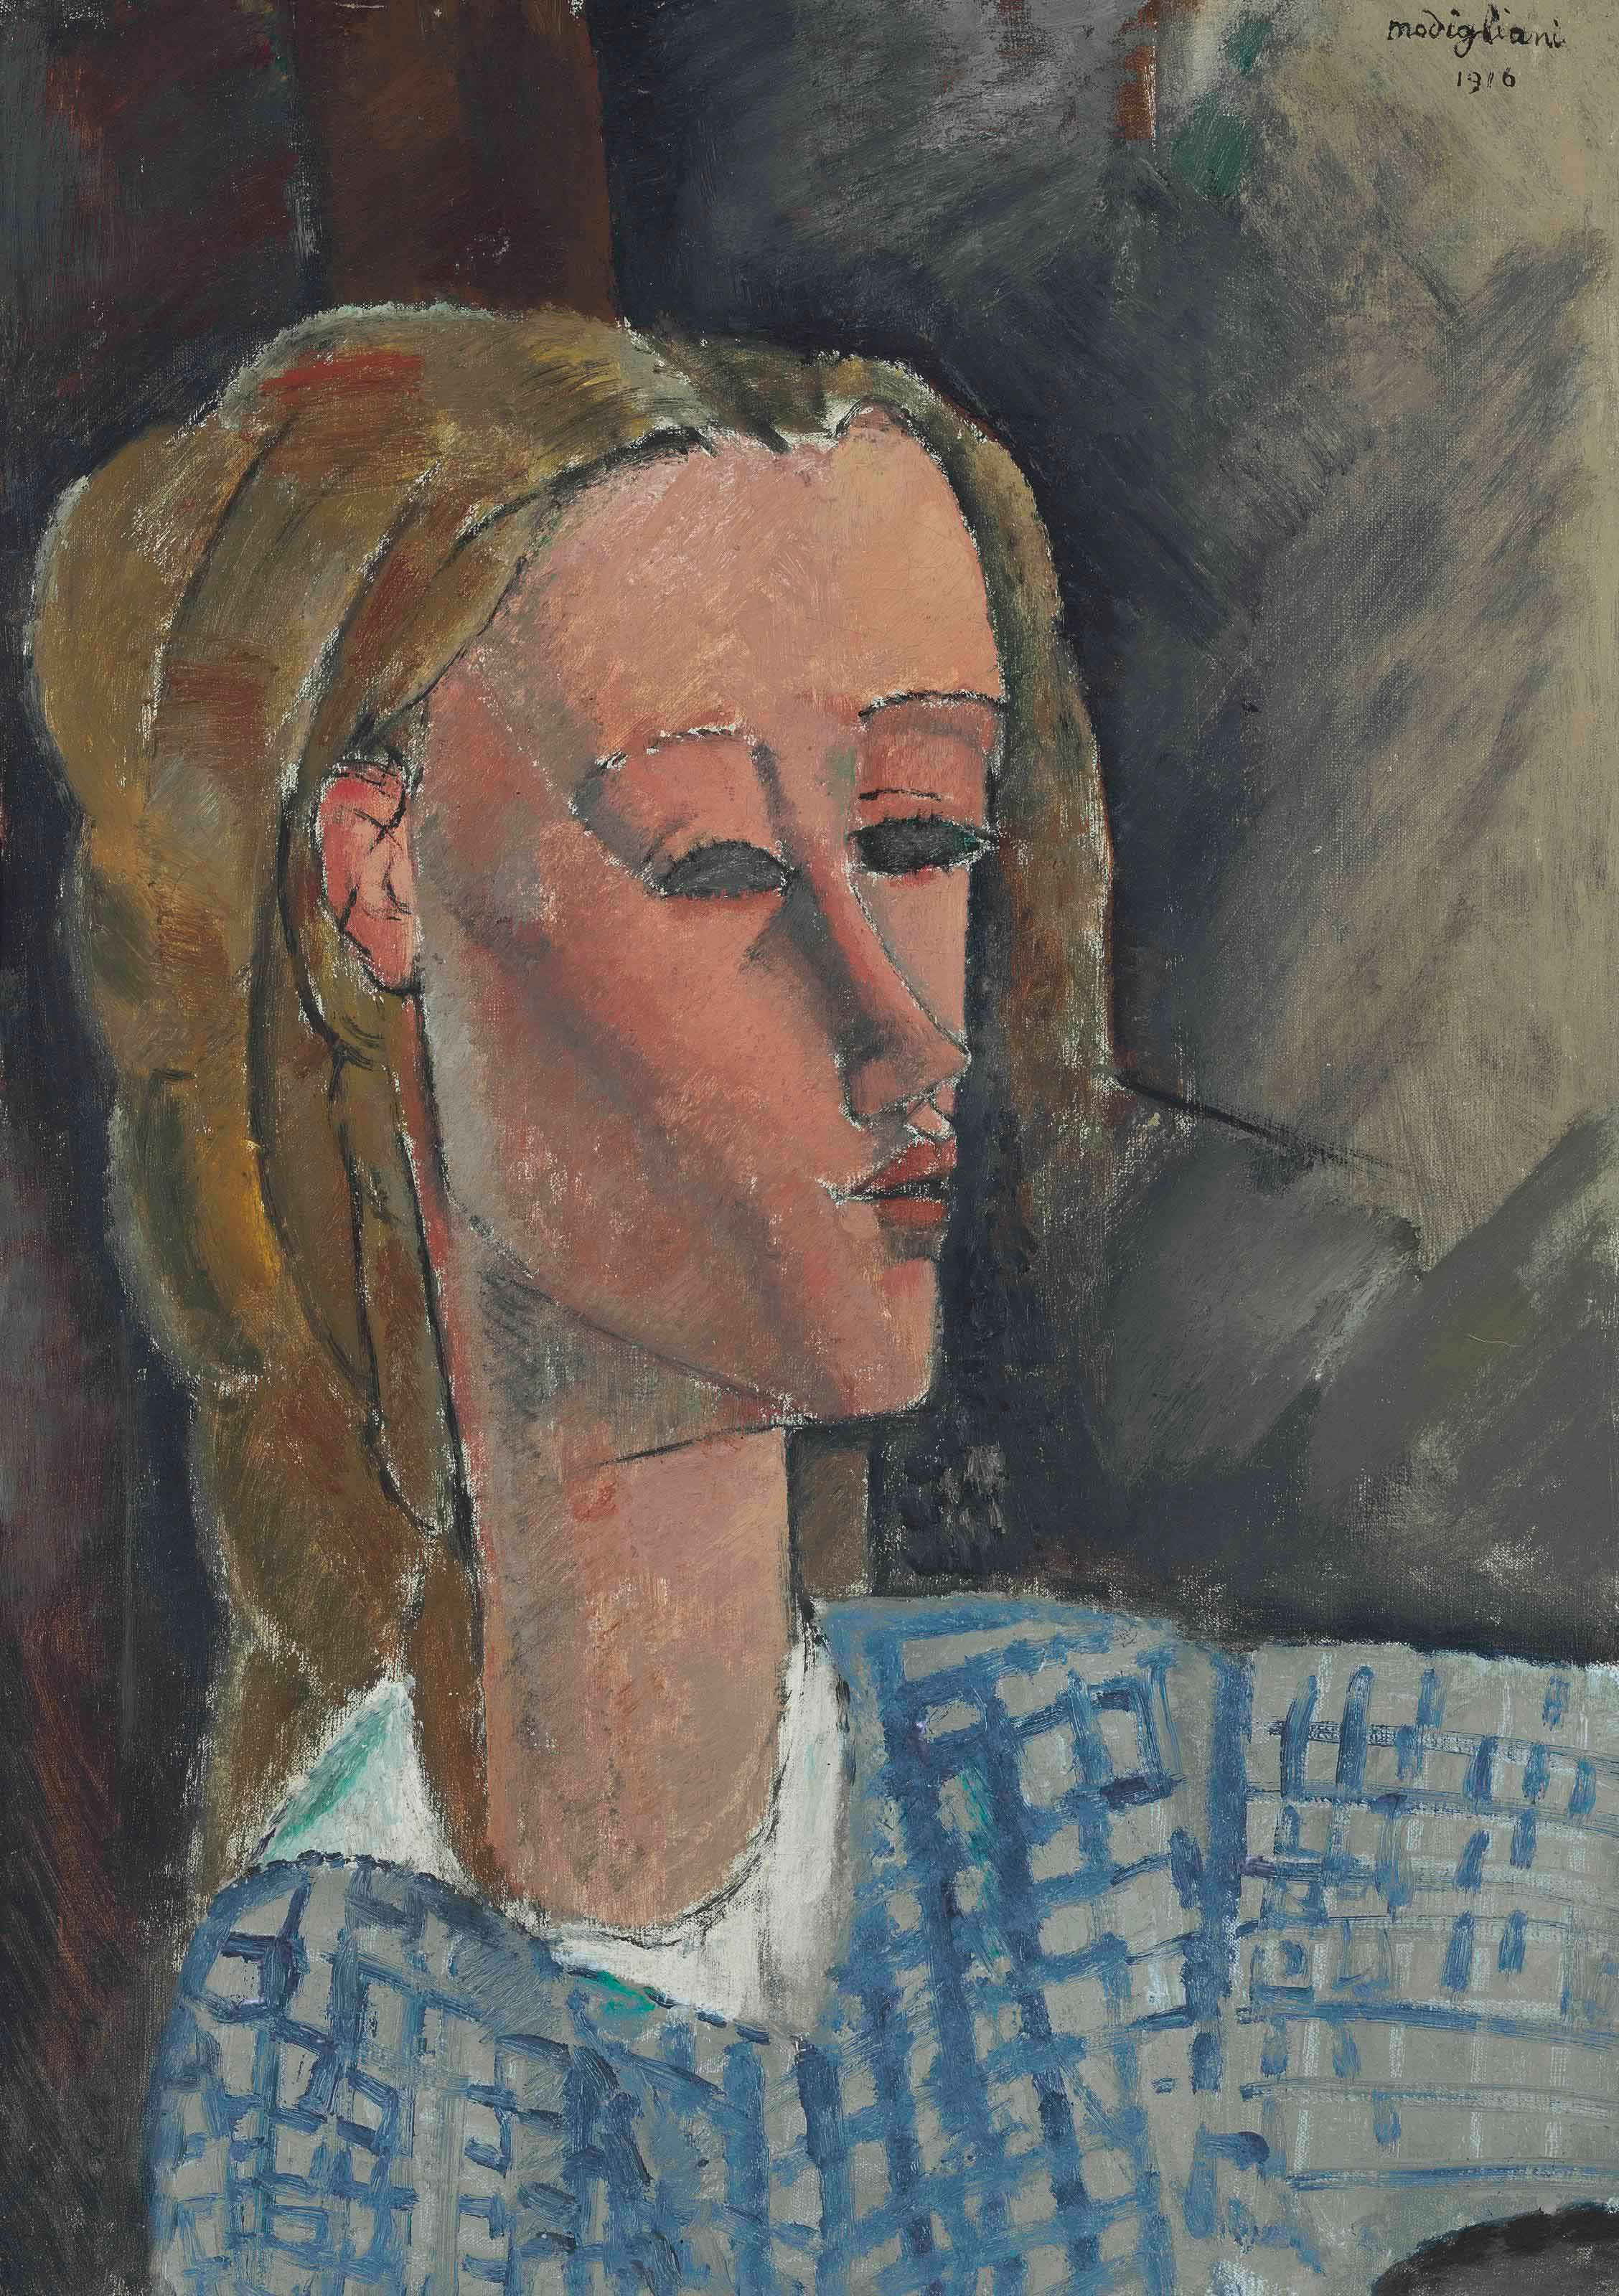 Amedeo Modigliani, Beatrice Hastings, 1916. Image: Christie's